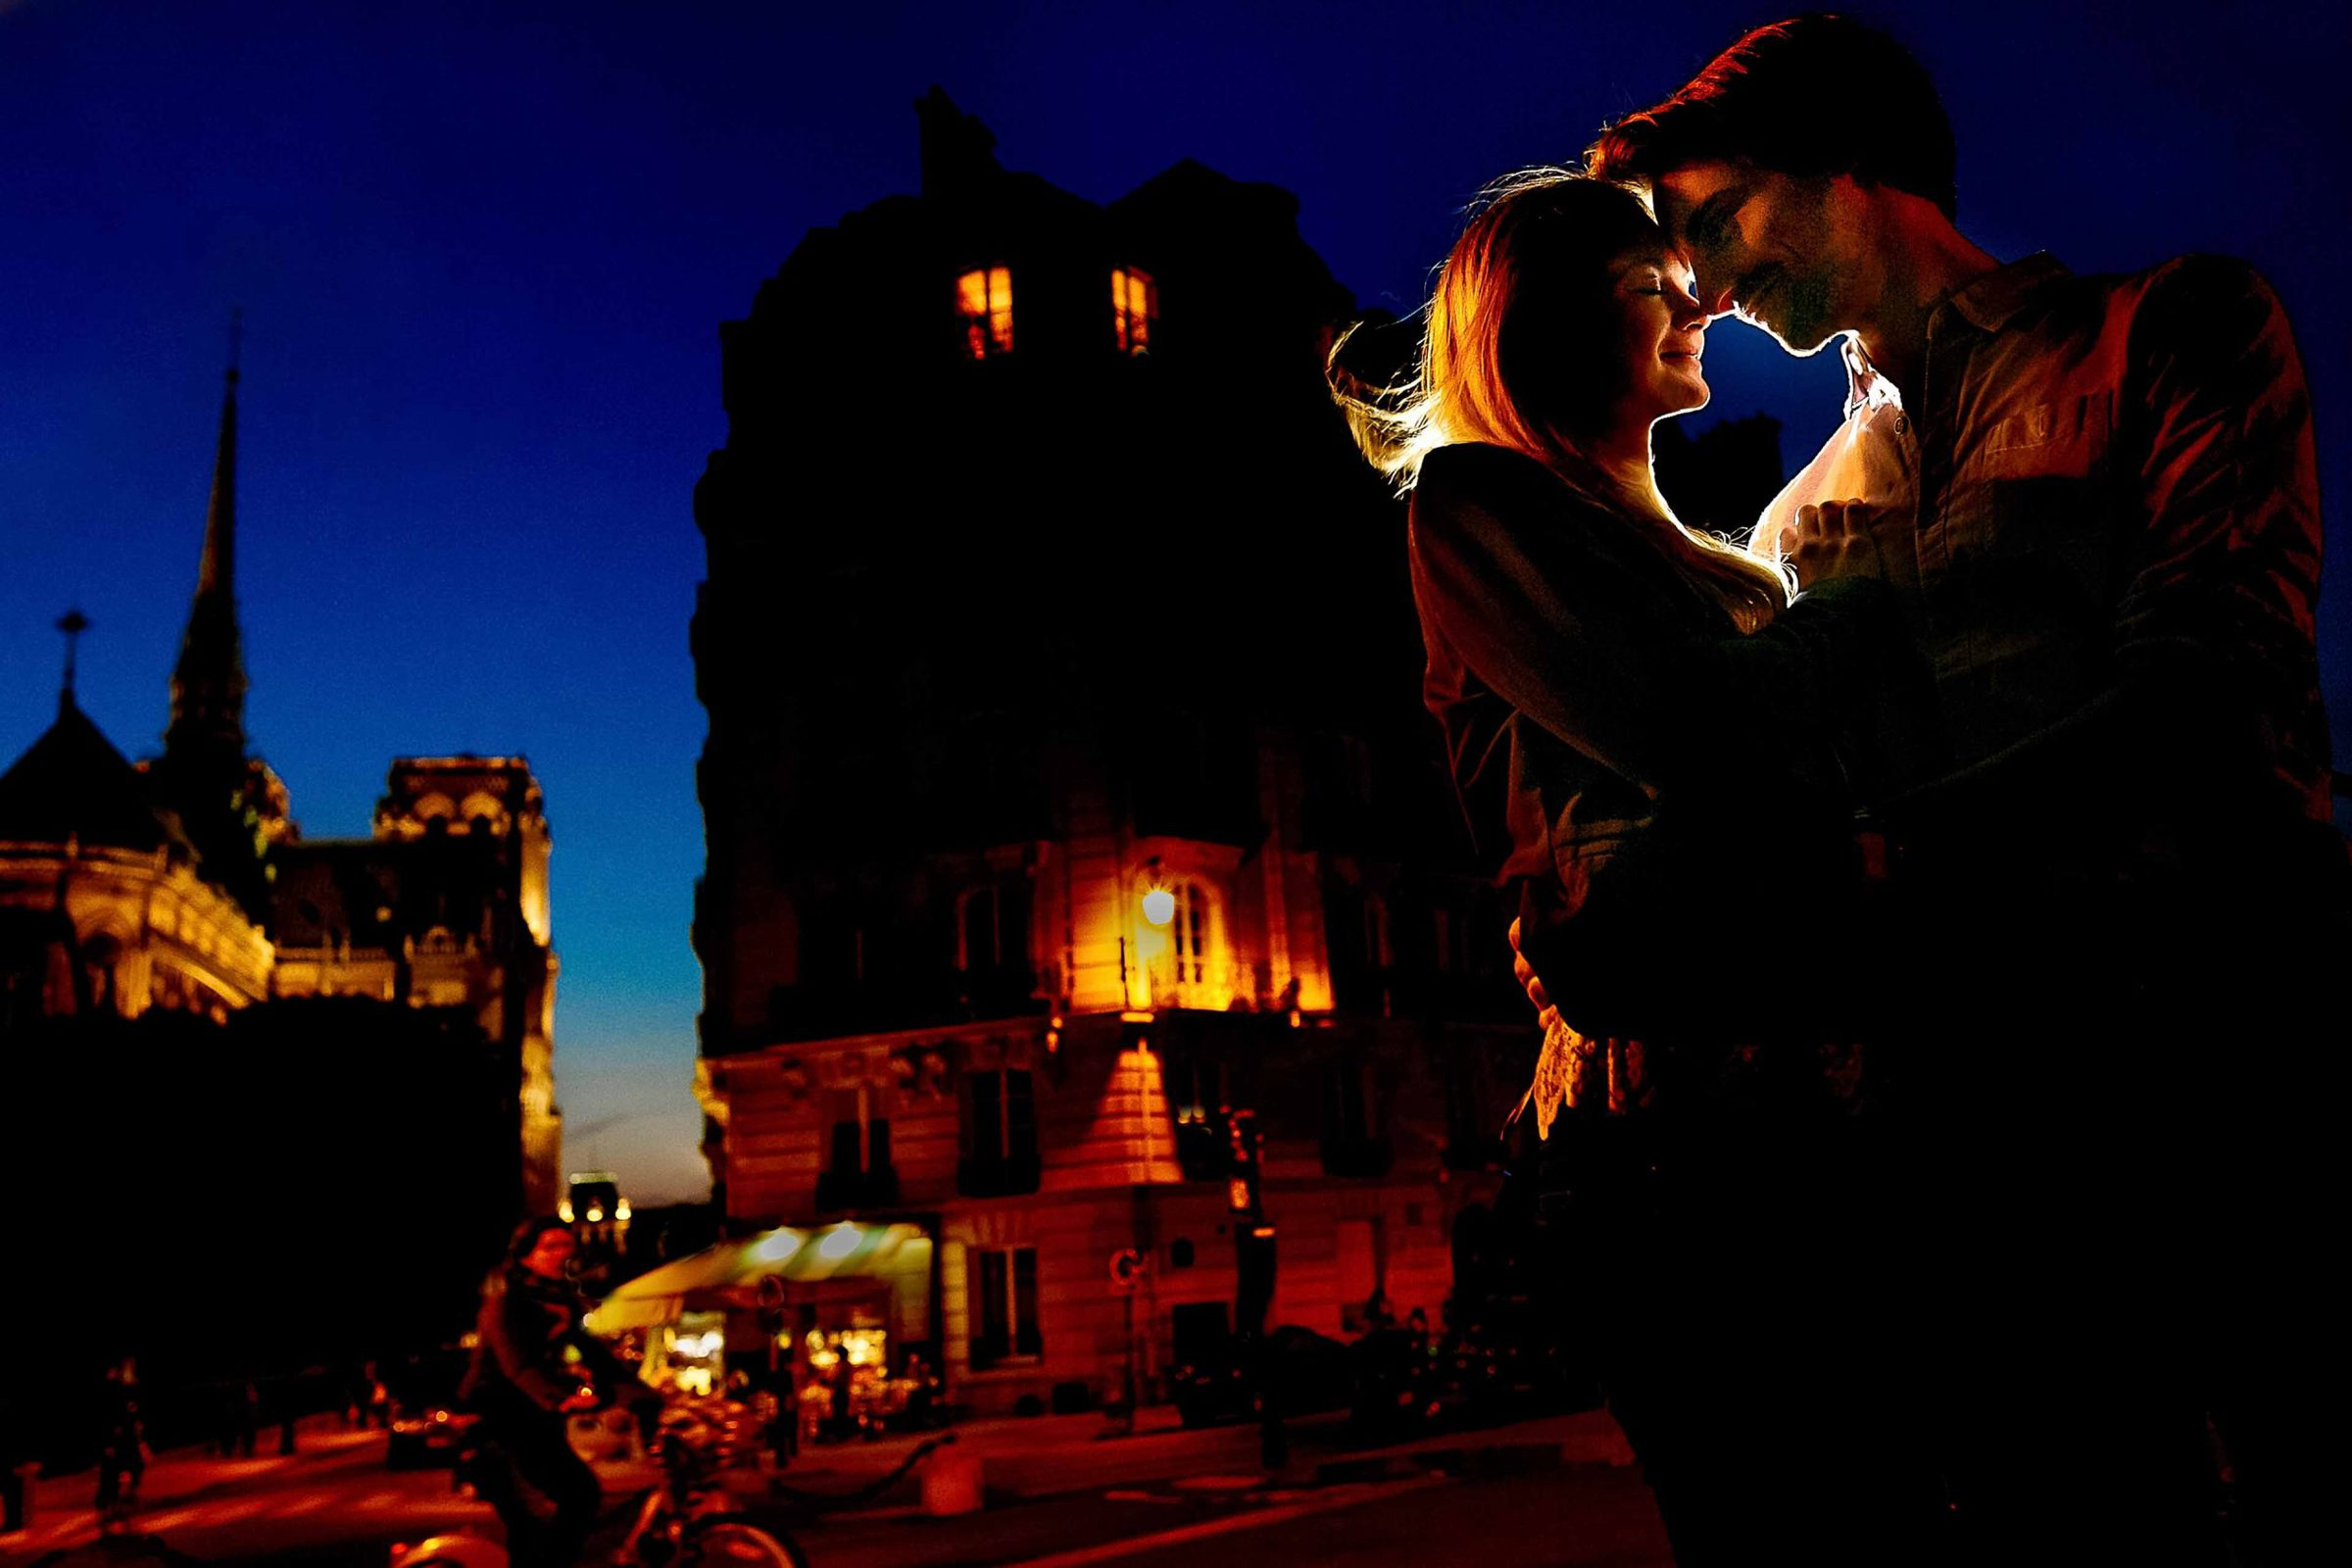 Lovers in Paris during blue hour with warm backlight wrapping around them. Engagement photo by Jos and Tree.